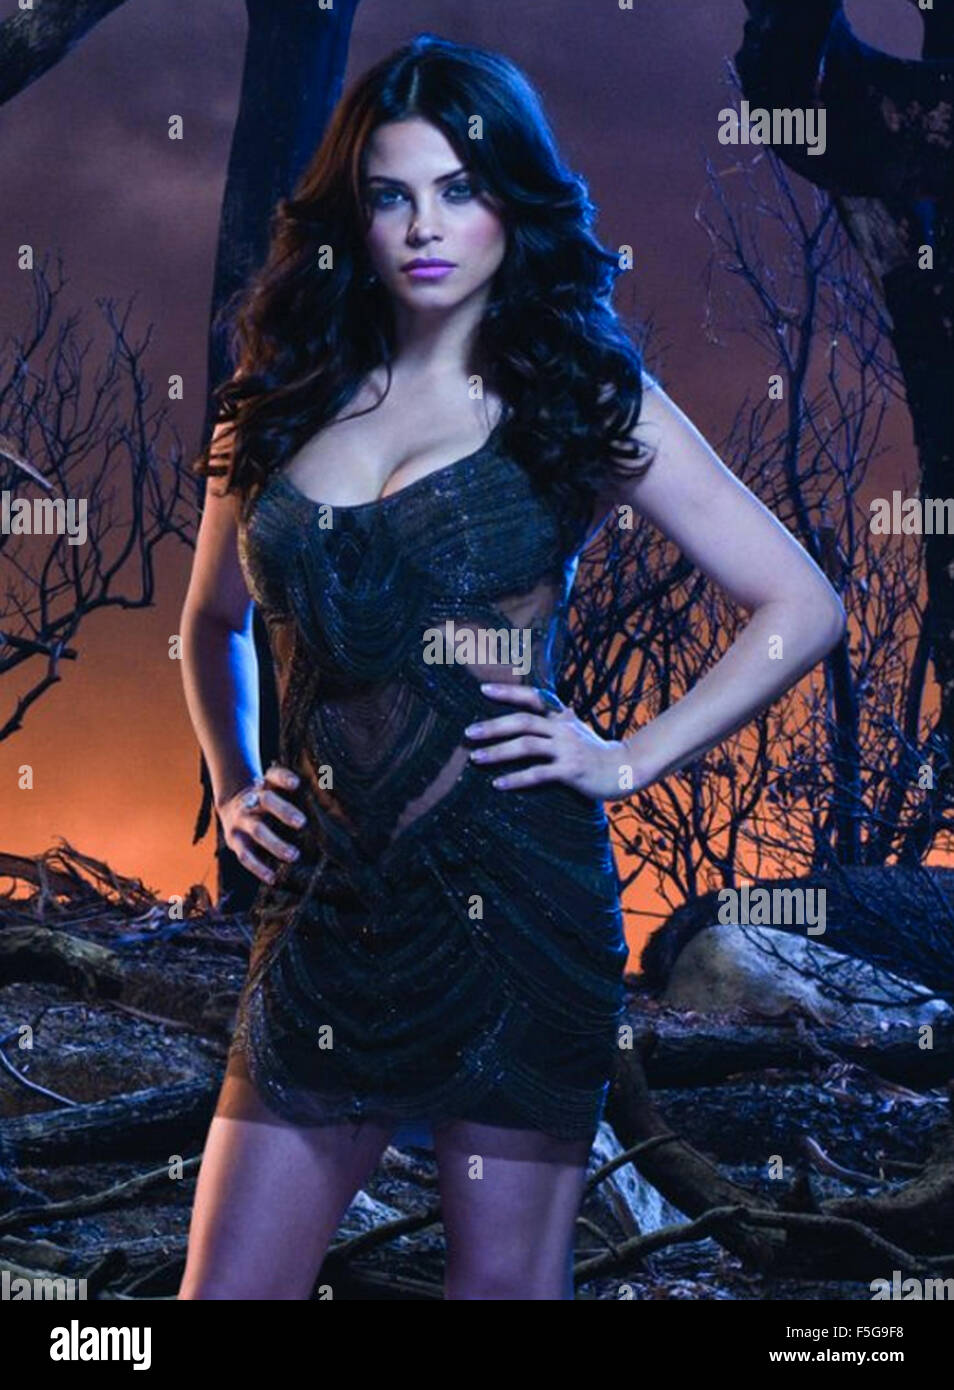 WITCHES OF EAST END 2013  Fox21 tv series  with Jenna Dewan Tatum - Stock Image